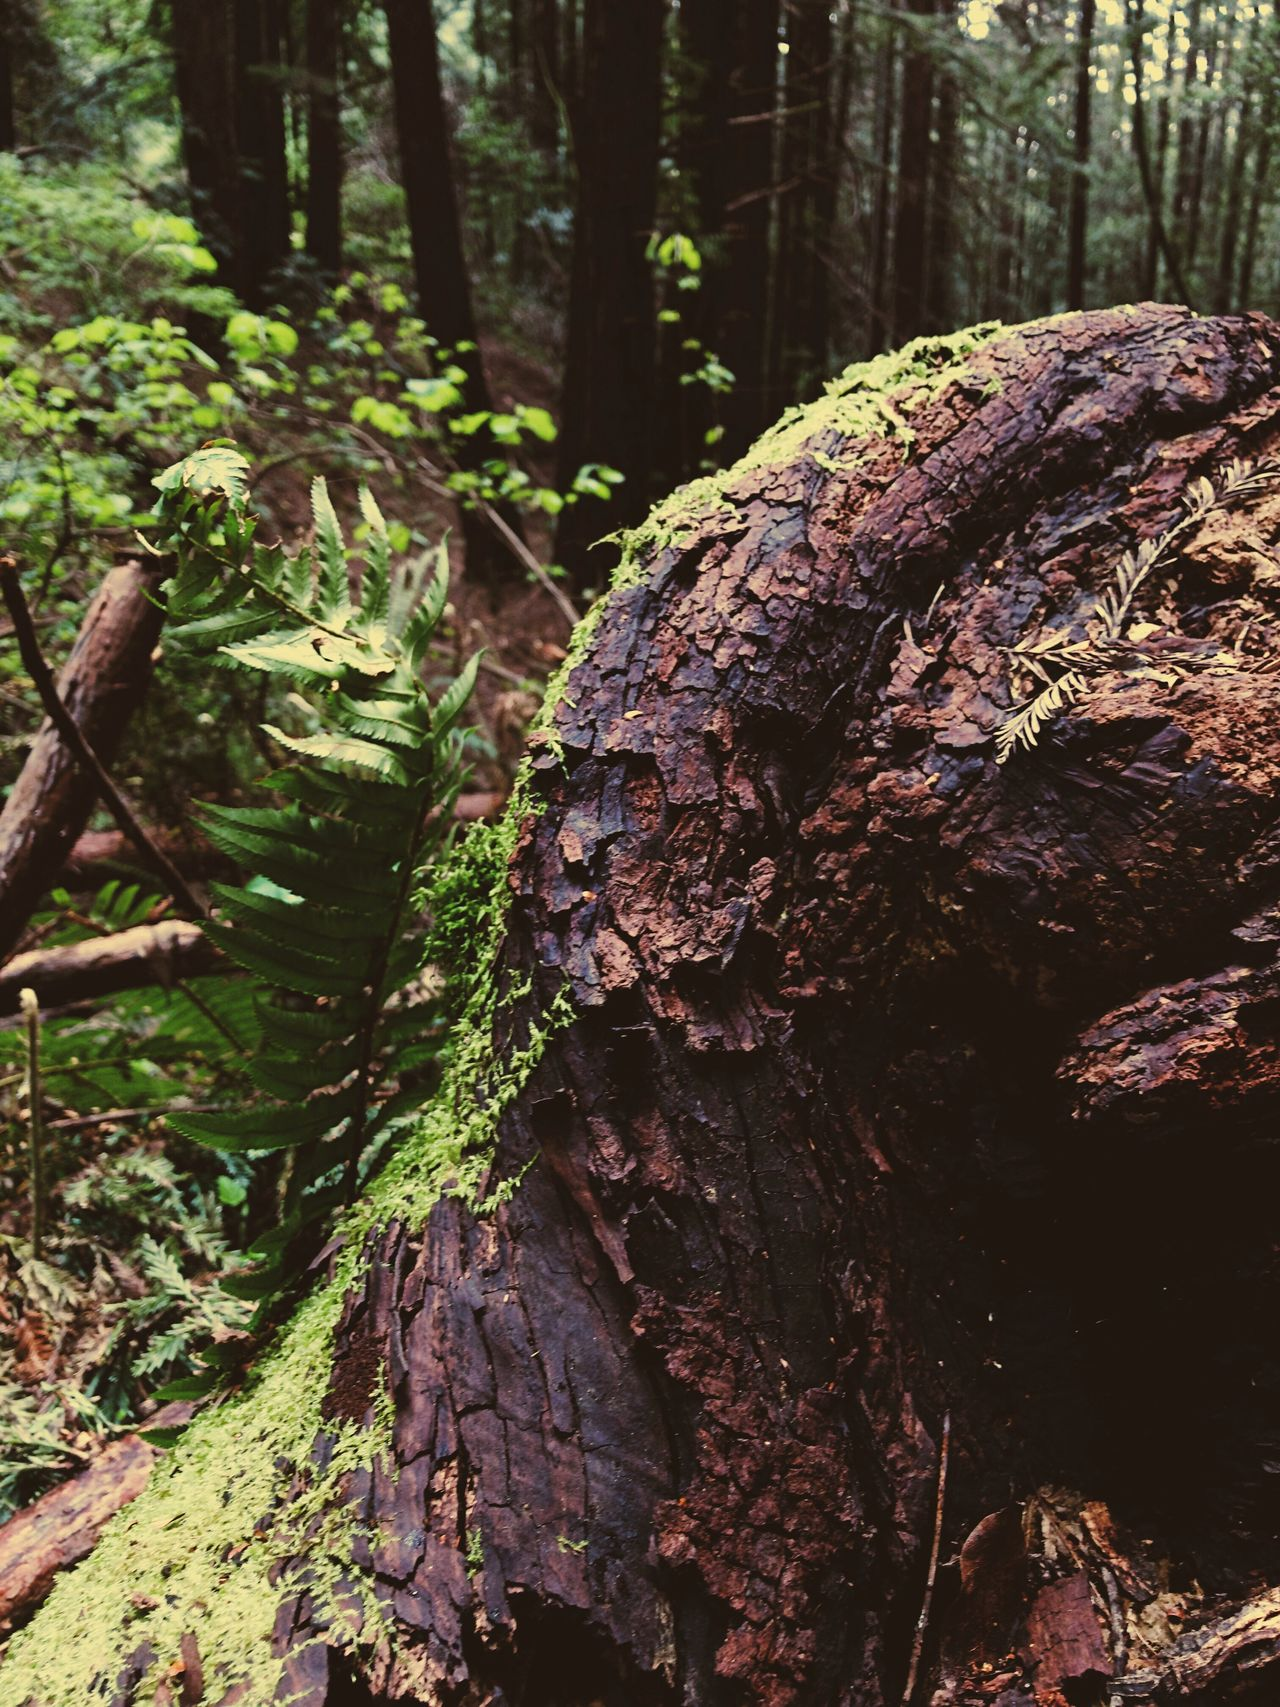 Check This Out EyeEm Nature Lover Nature Tree Trunk Forest Freshness EyeEm Nature Photography